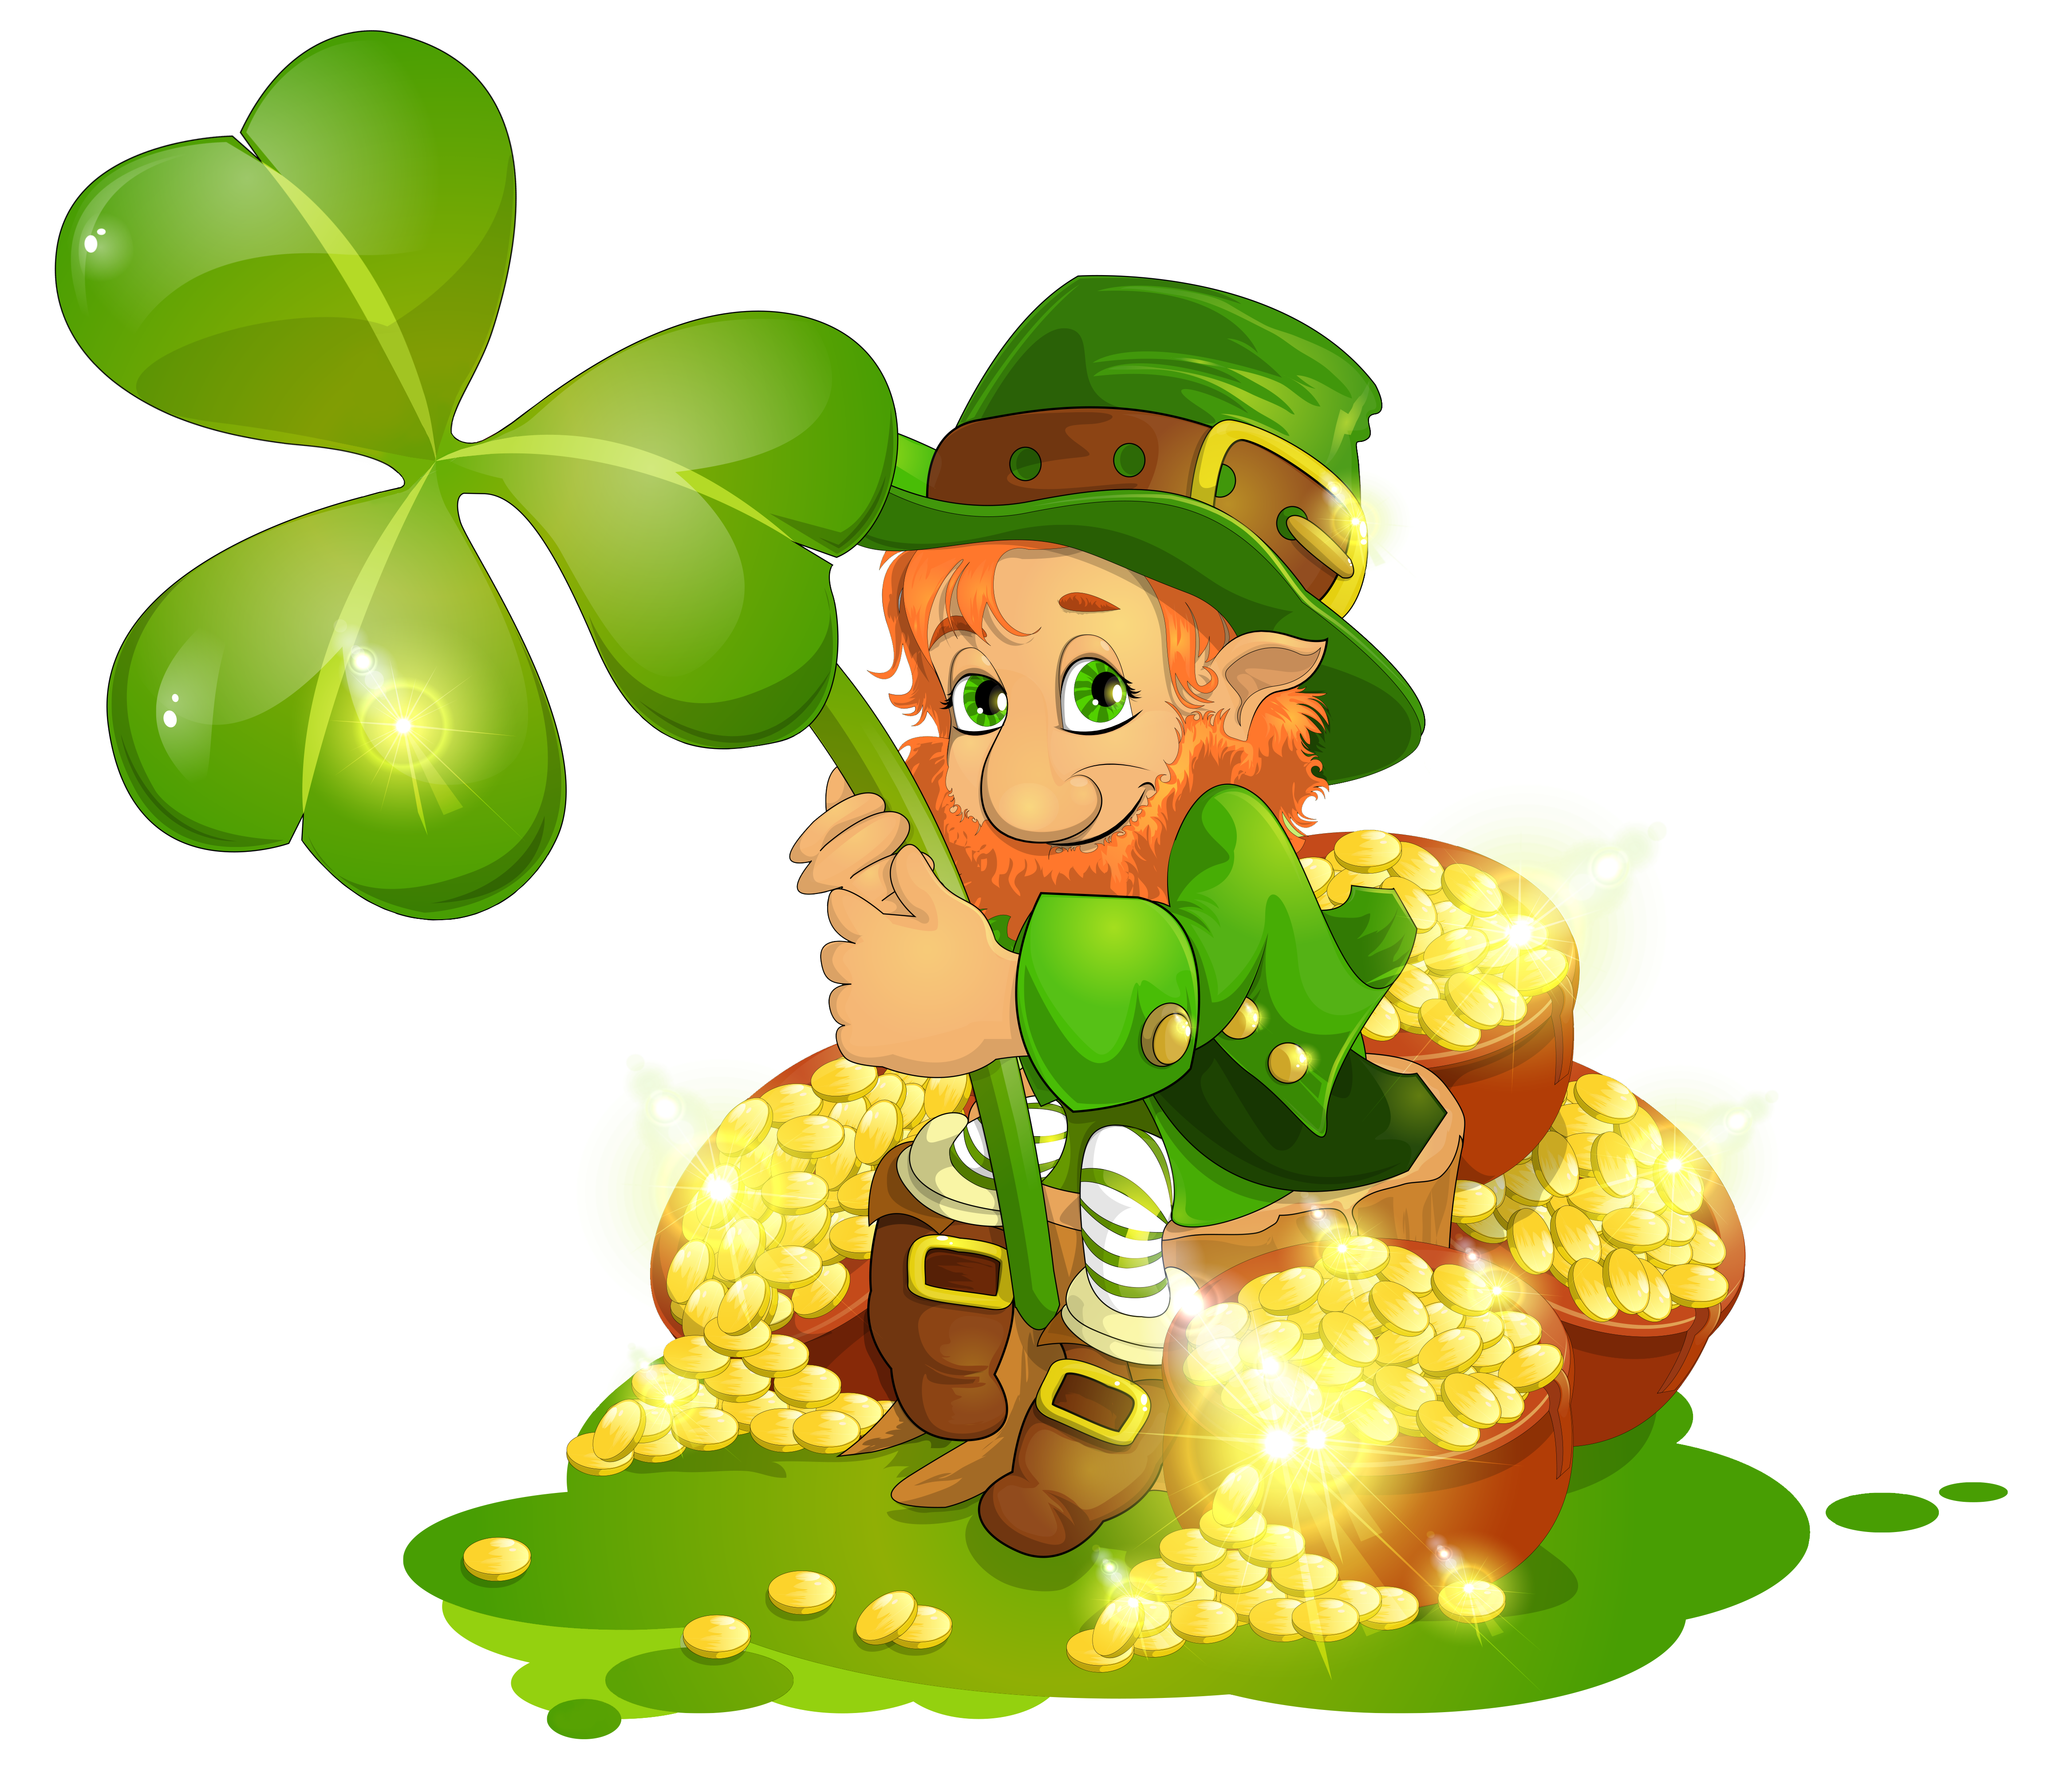 Saint Patricks Day Leprechaun With Pot Of Gold And